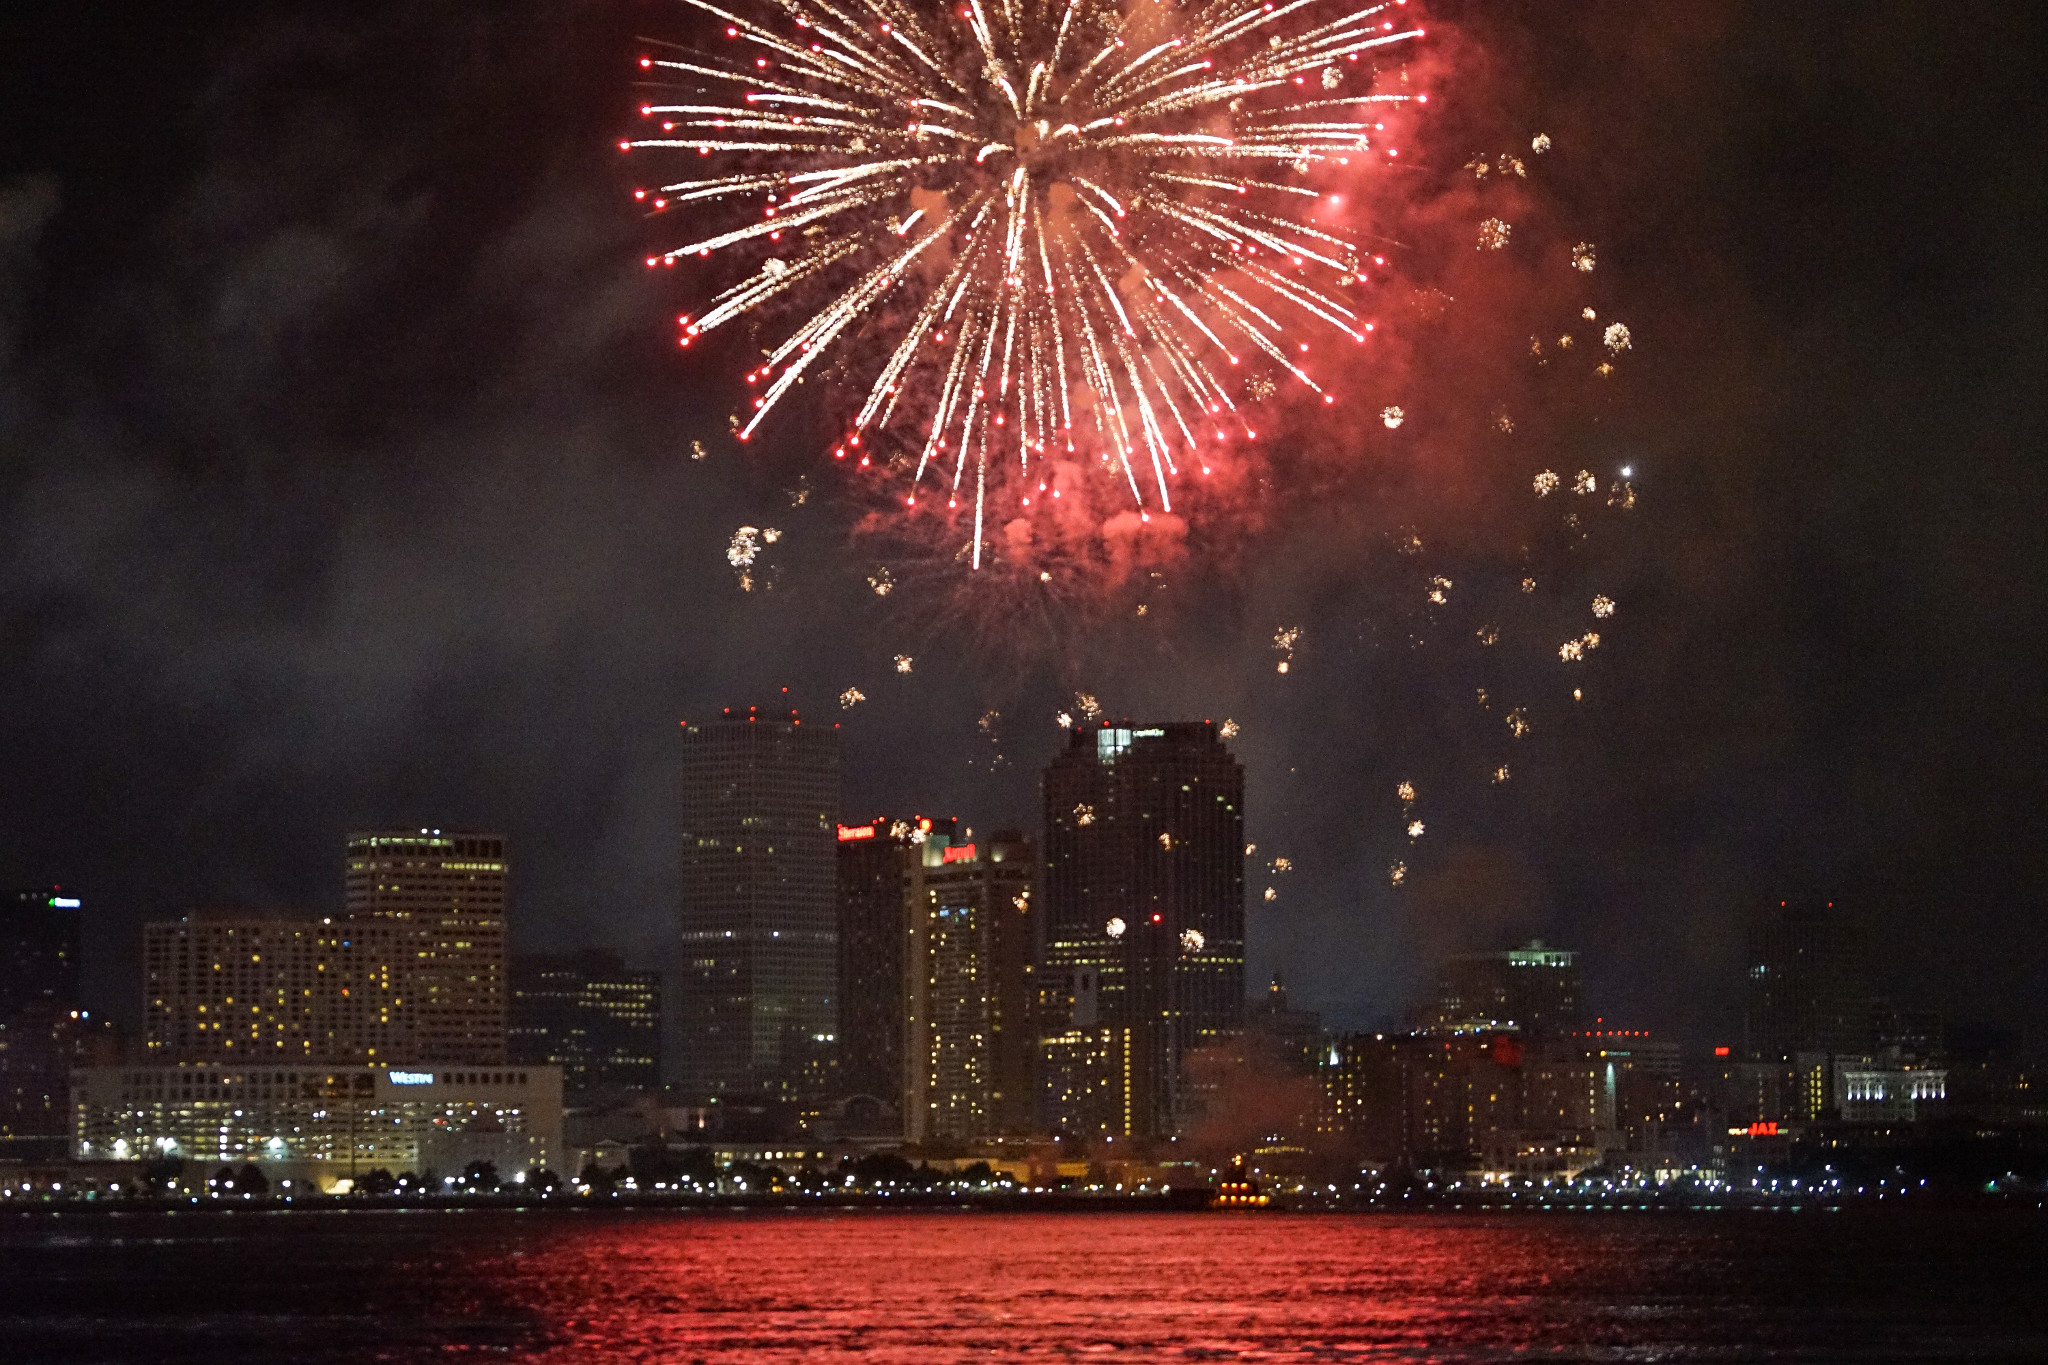 A spectacular 4th of July show on the Mighty Mississippi. (Photo: Paul Broussard)